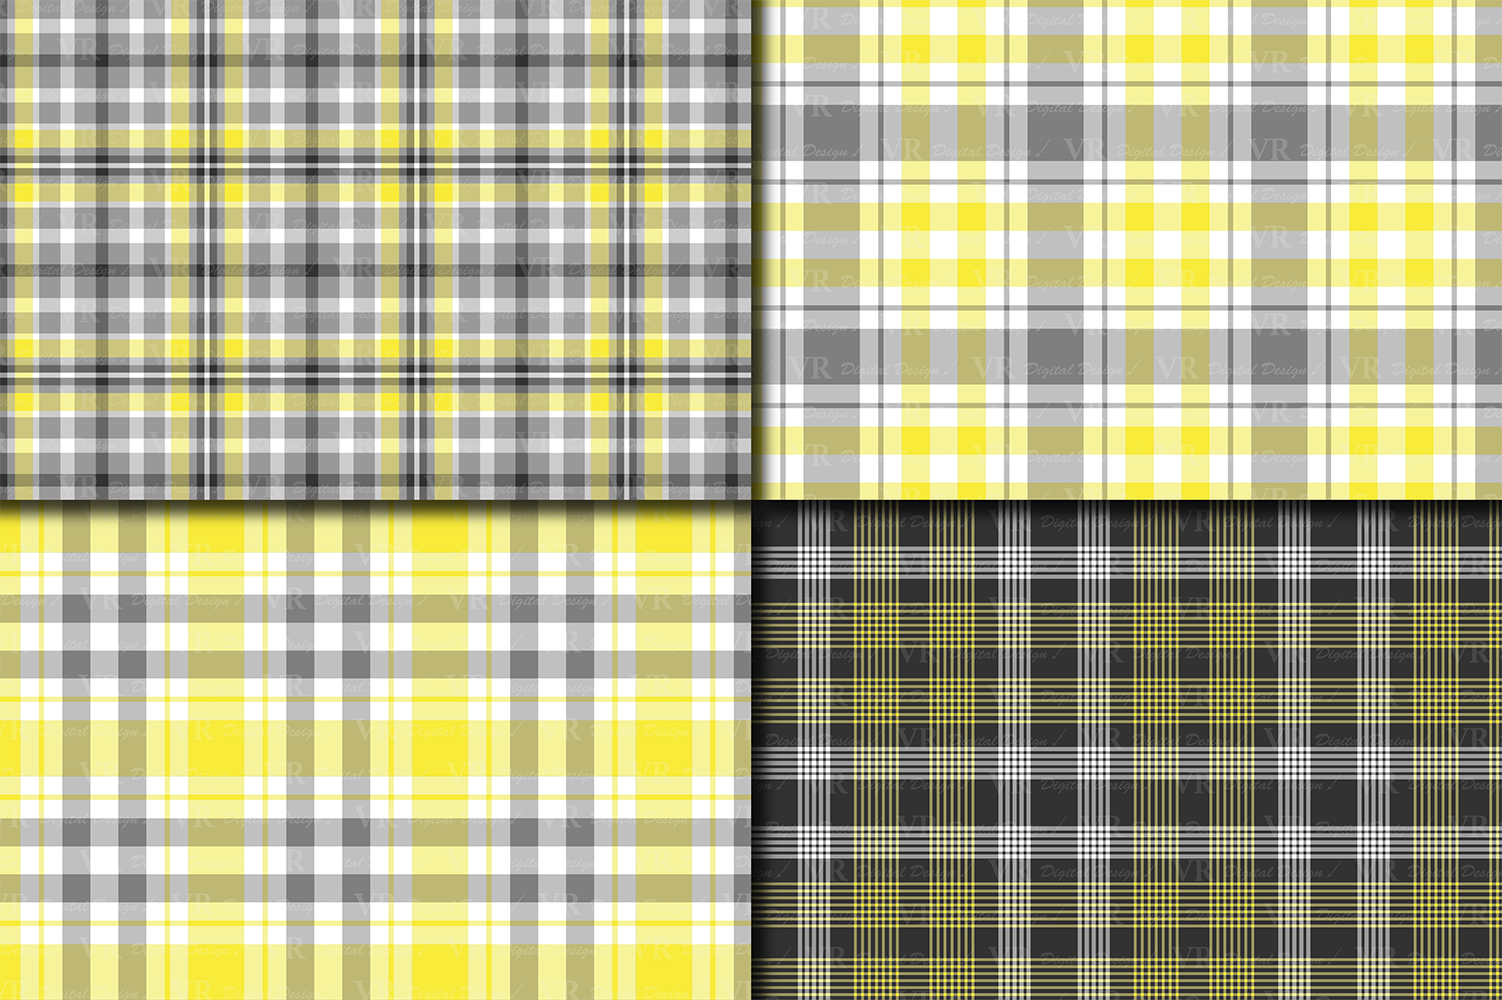 Yellow and Gray Plaid Digital Paper example image 2